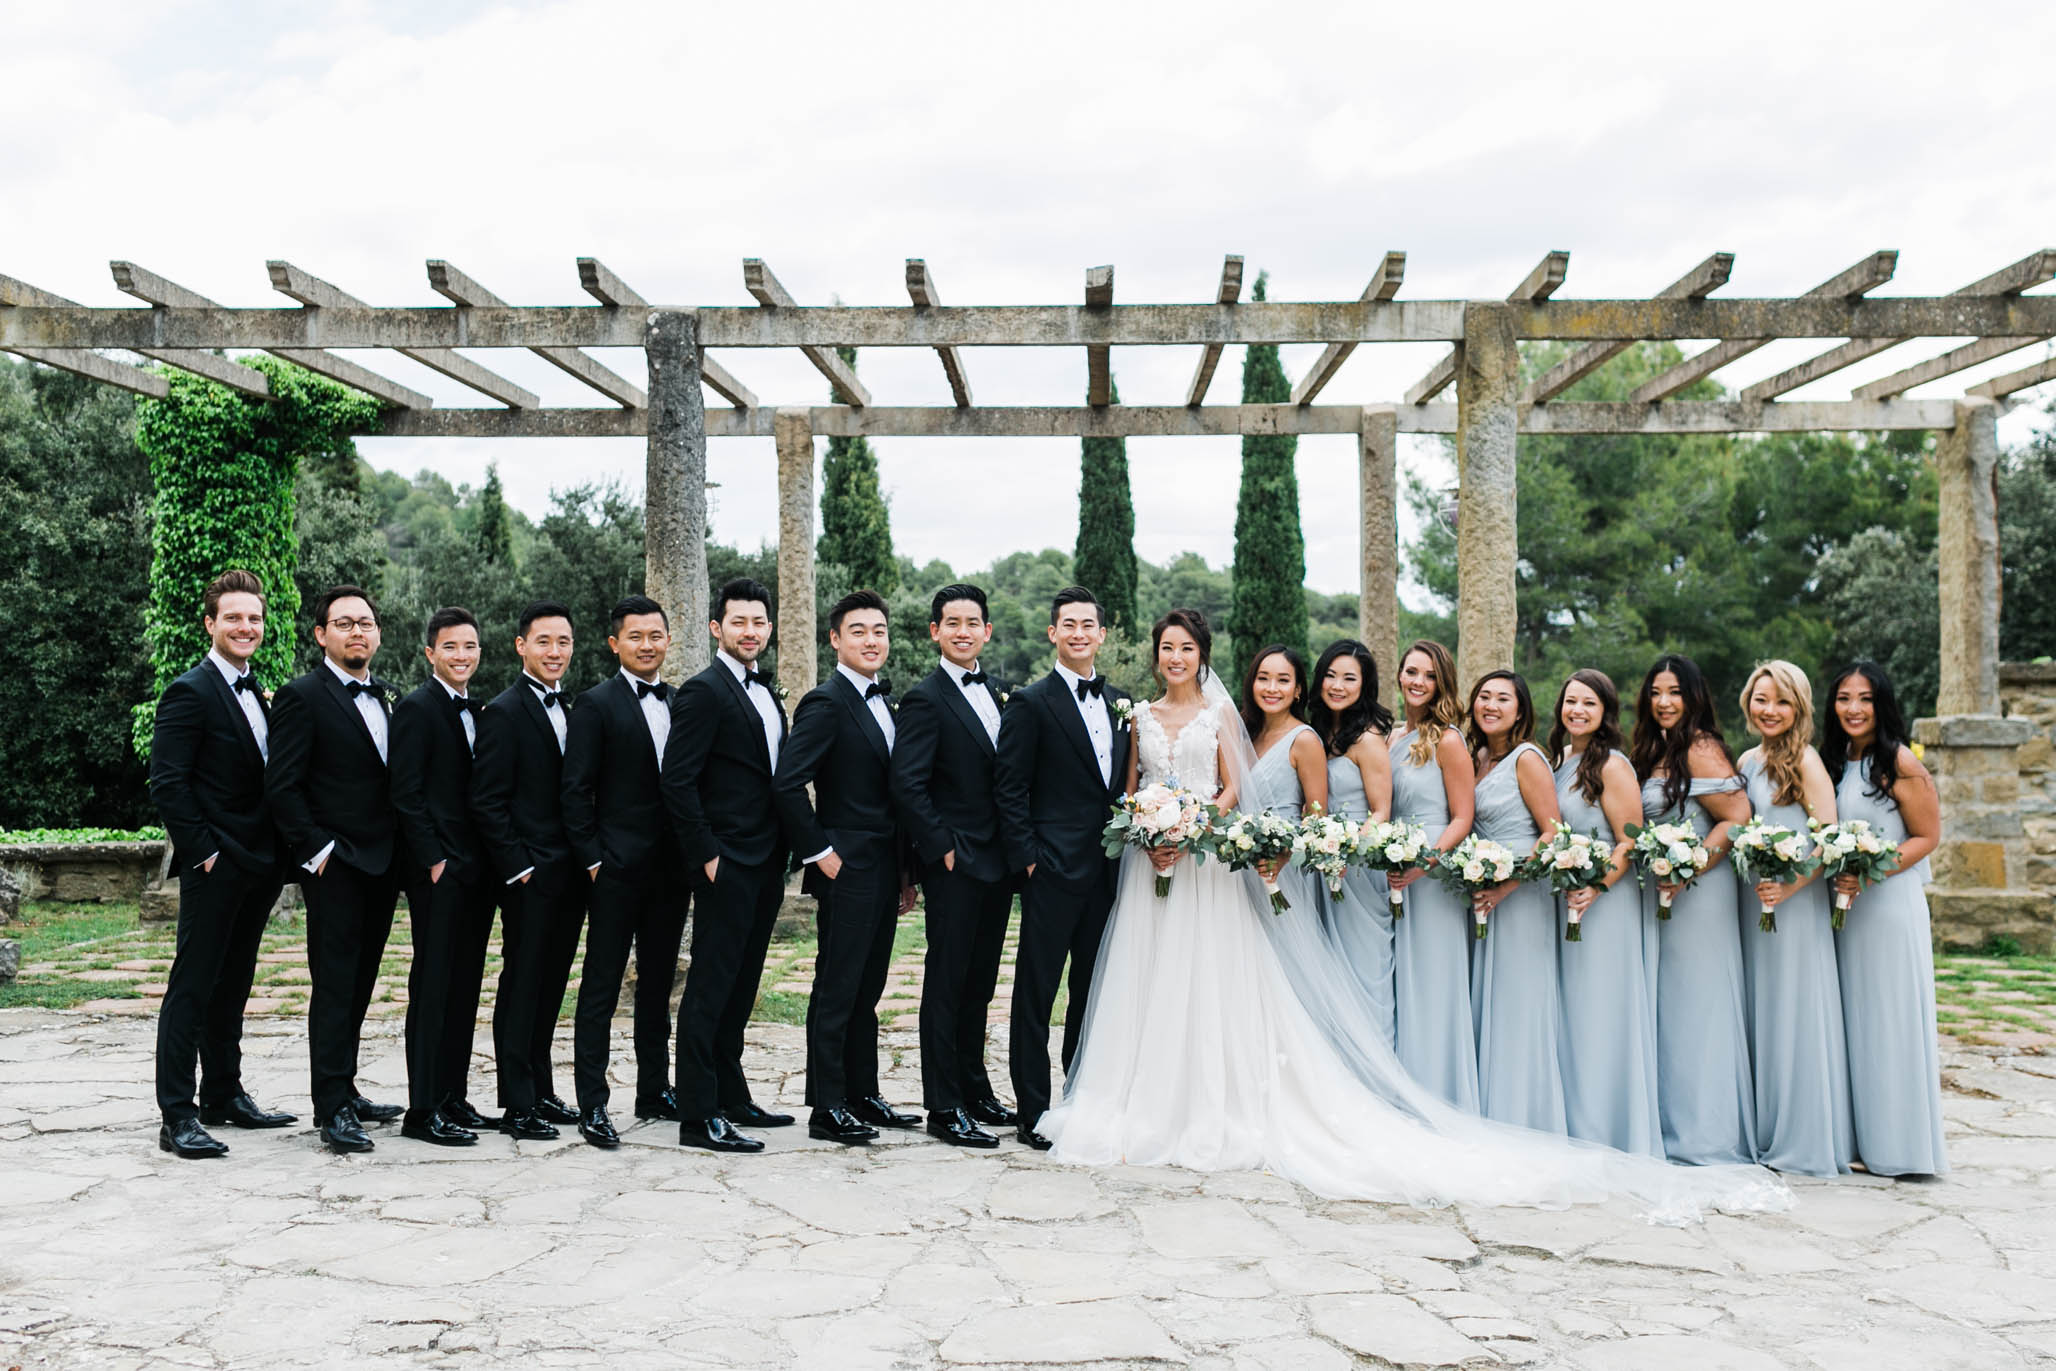 Isn't this the sexiest bridal party you've ever seen?